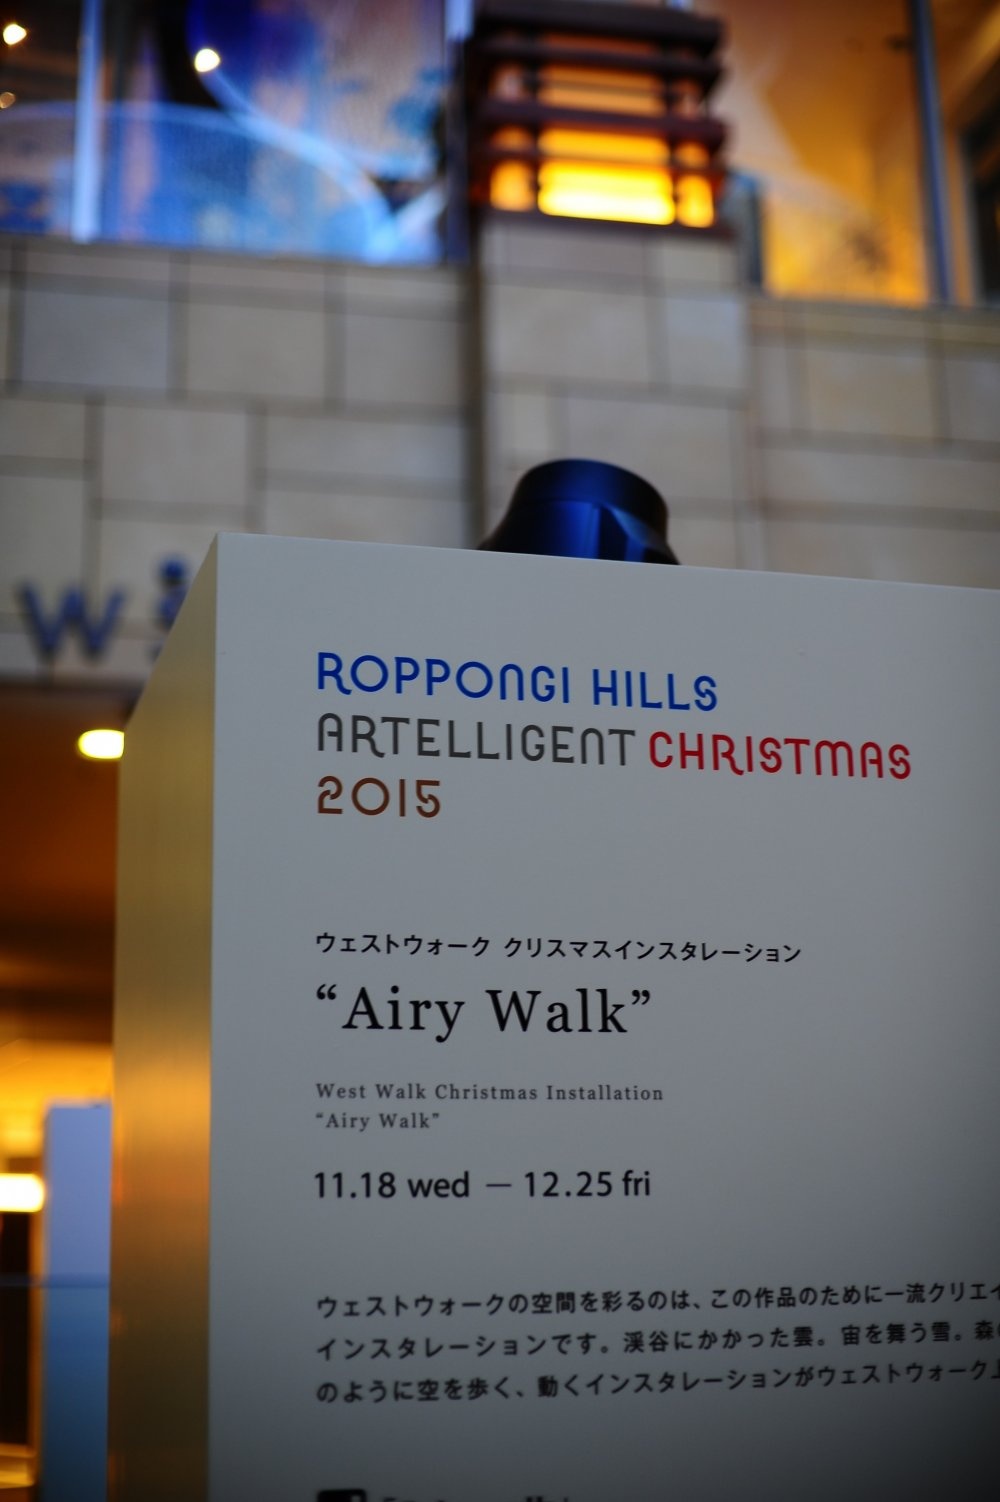 The 2015 Christmas theme at Roppongi Hills was Artelligent Christmas